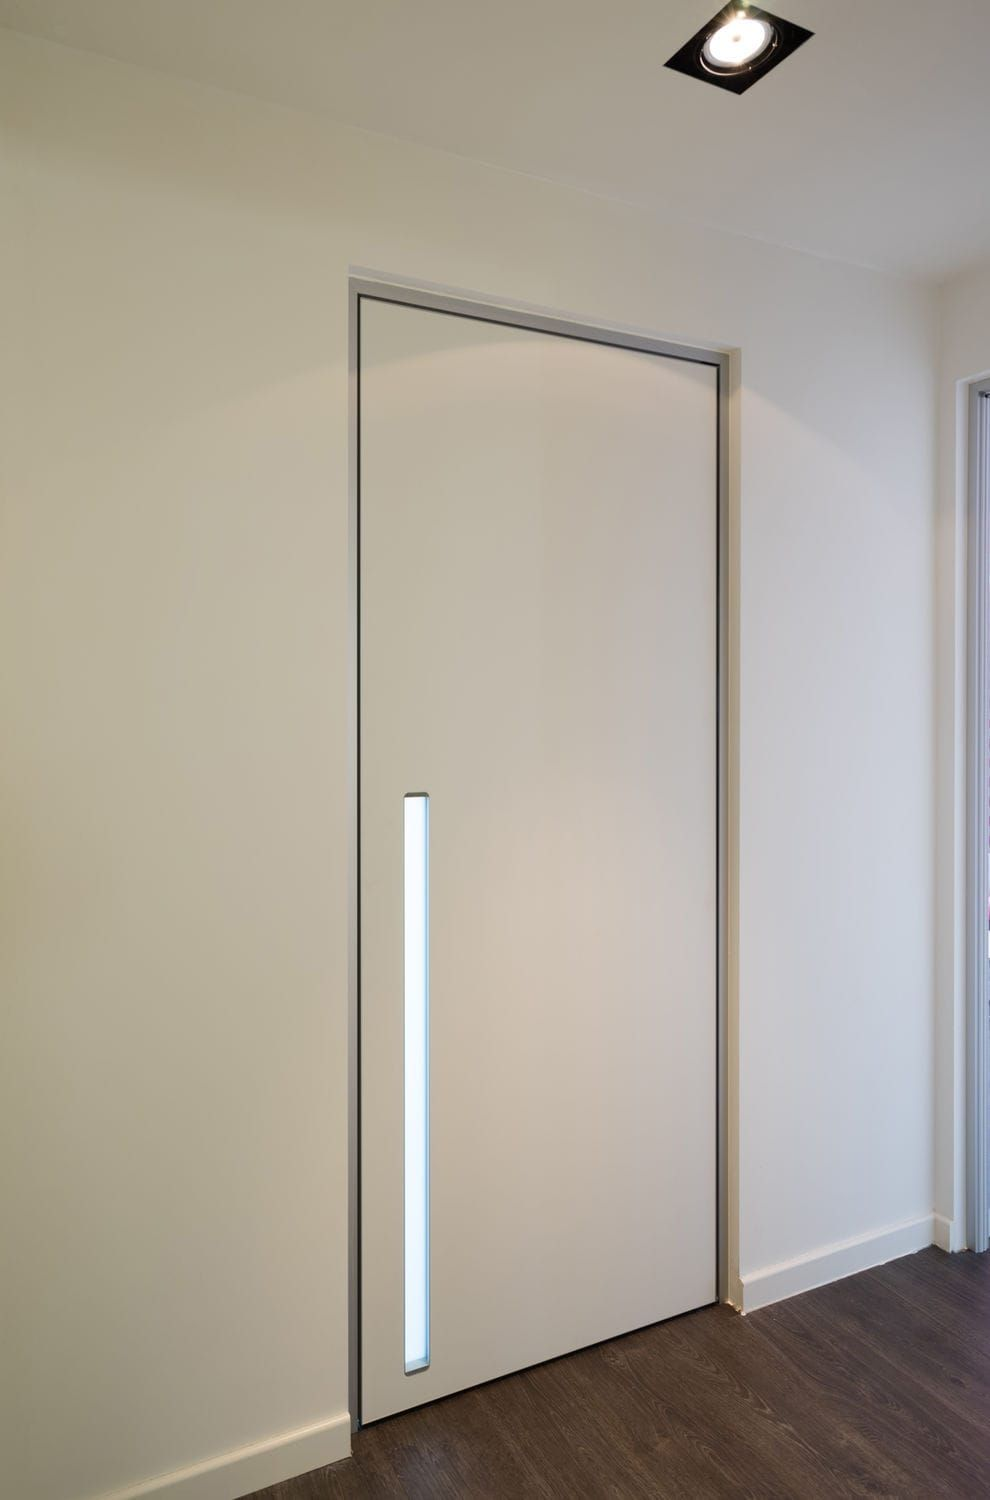 Two Way Door Aluminum Hpl Svd Built In Handle 1200mm Anyway Doors Binnendeuren Deuren Interieur Deur Zonder Klink